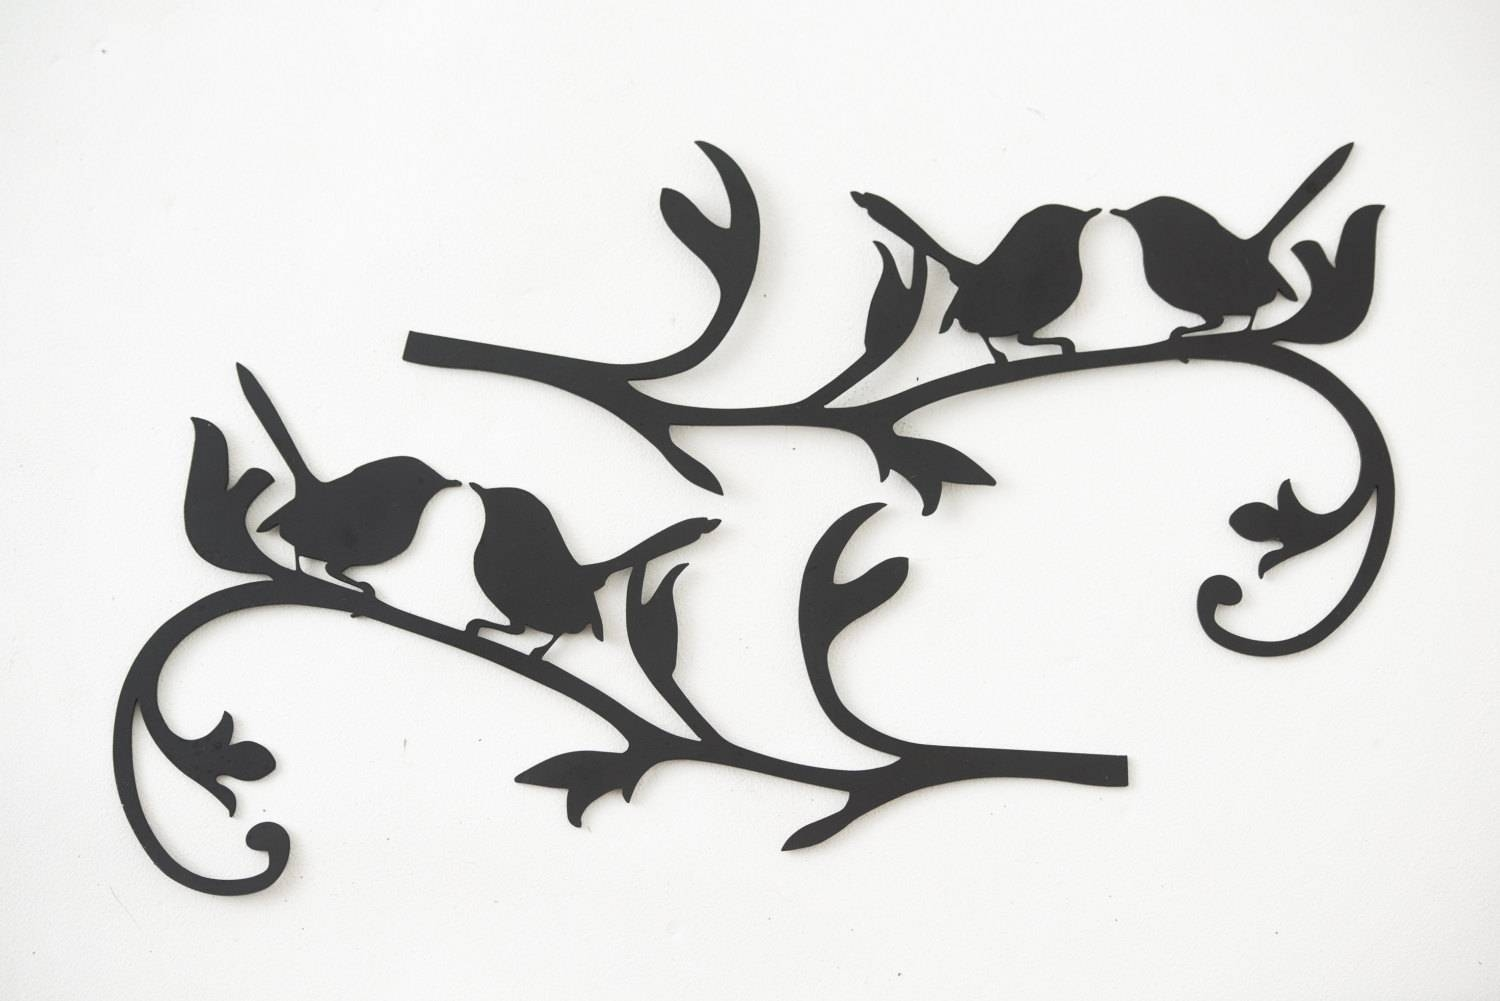 Wall Art Designs: Metal Bird Wall Art Hand Drawn And Laser Cut For Latest Plasma Cut Metal Wall Art (Gallery 3 of 20)